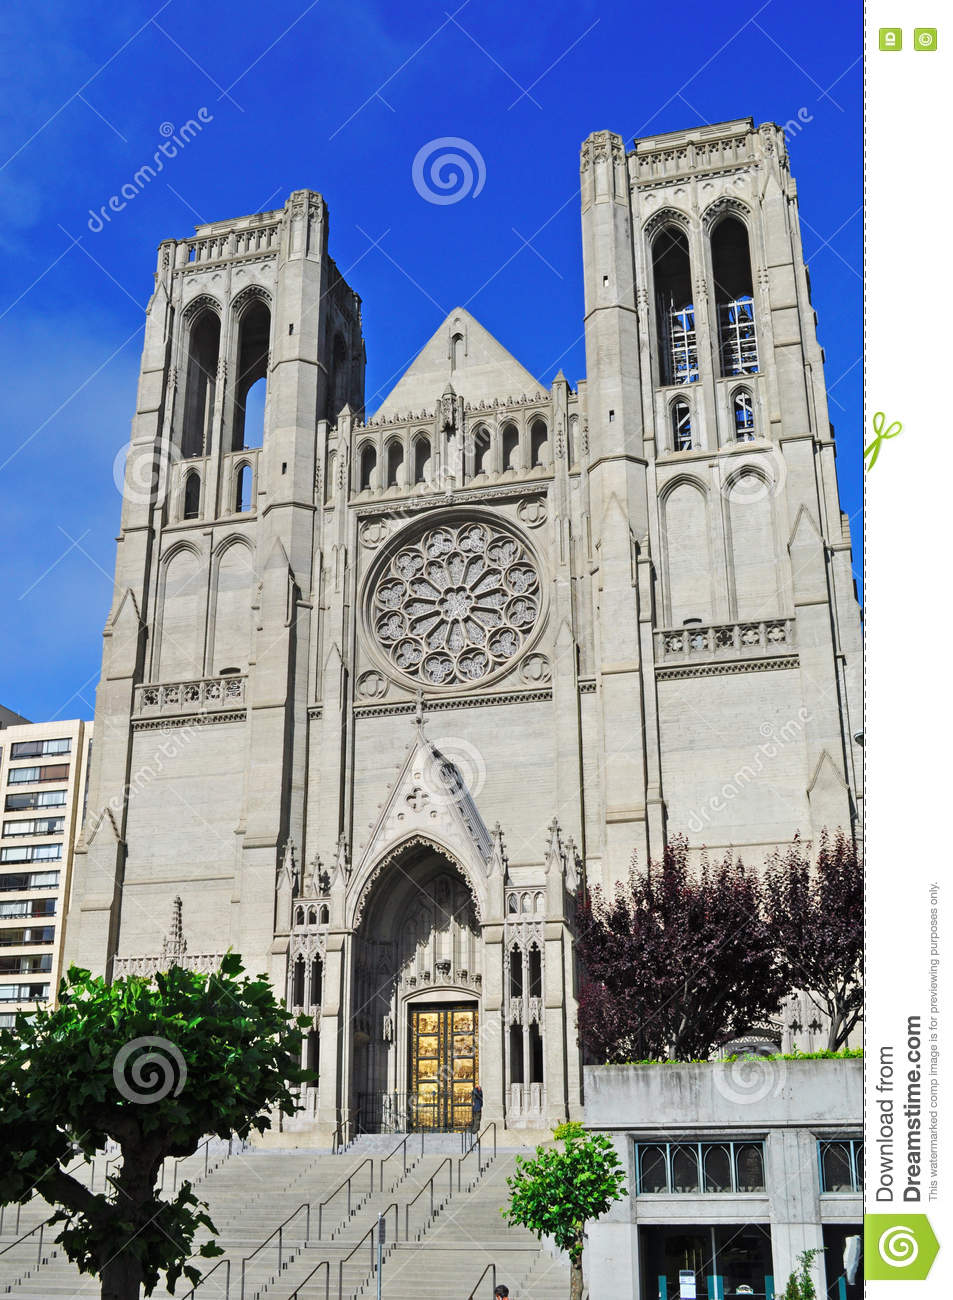 San Francisco, Grace Cathedral, rose window, architecture, Nob Hill, episcopal, California, United States of America, Usa